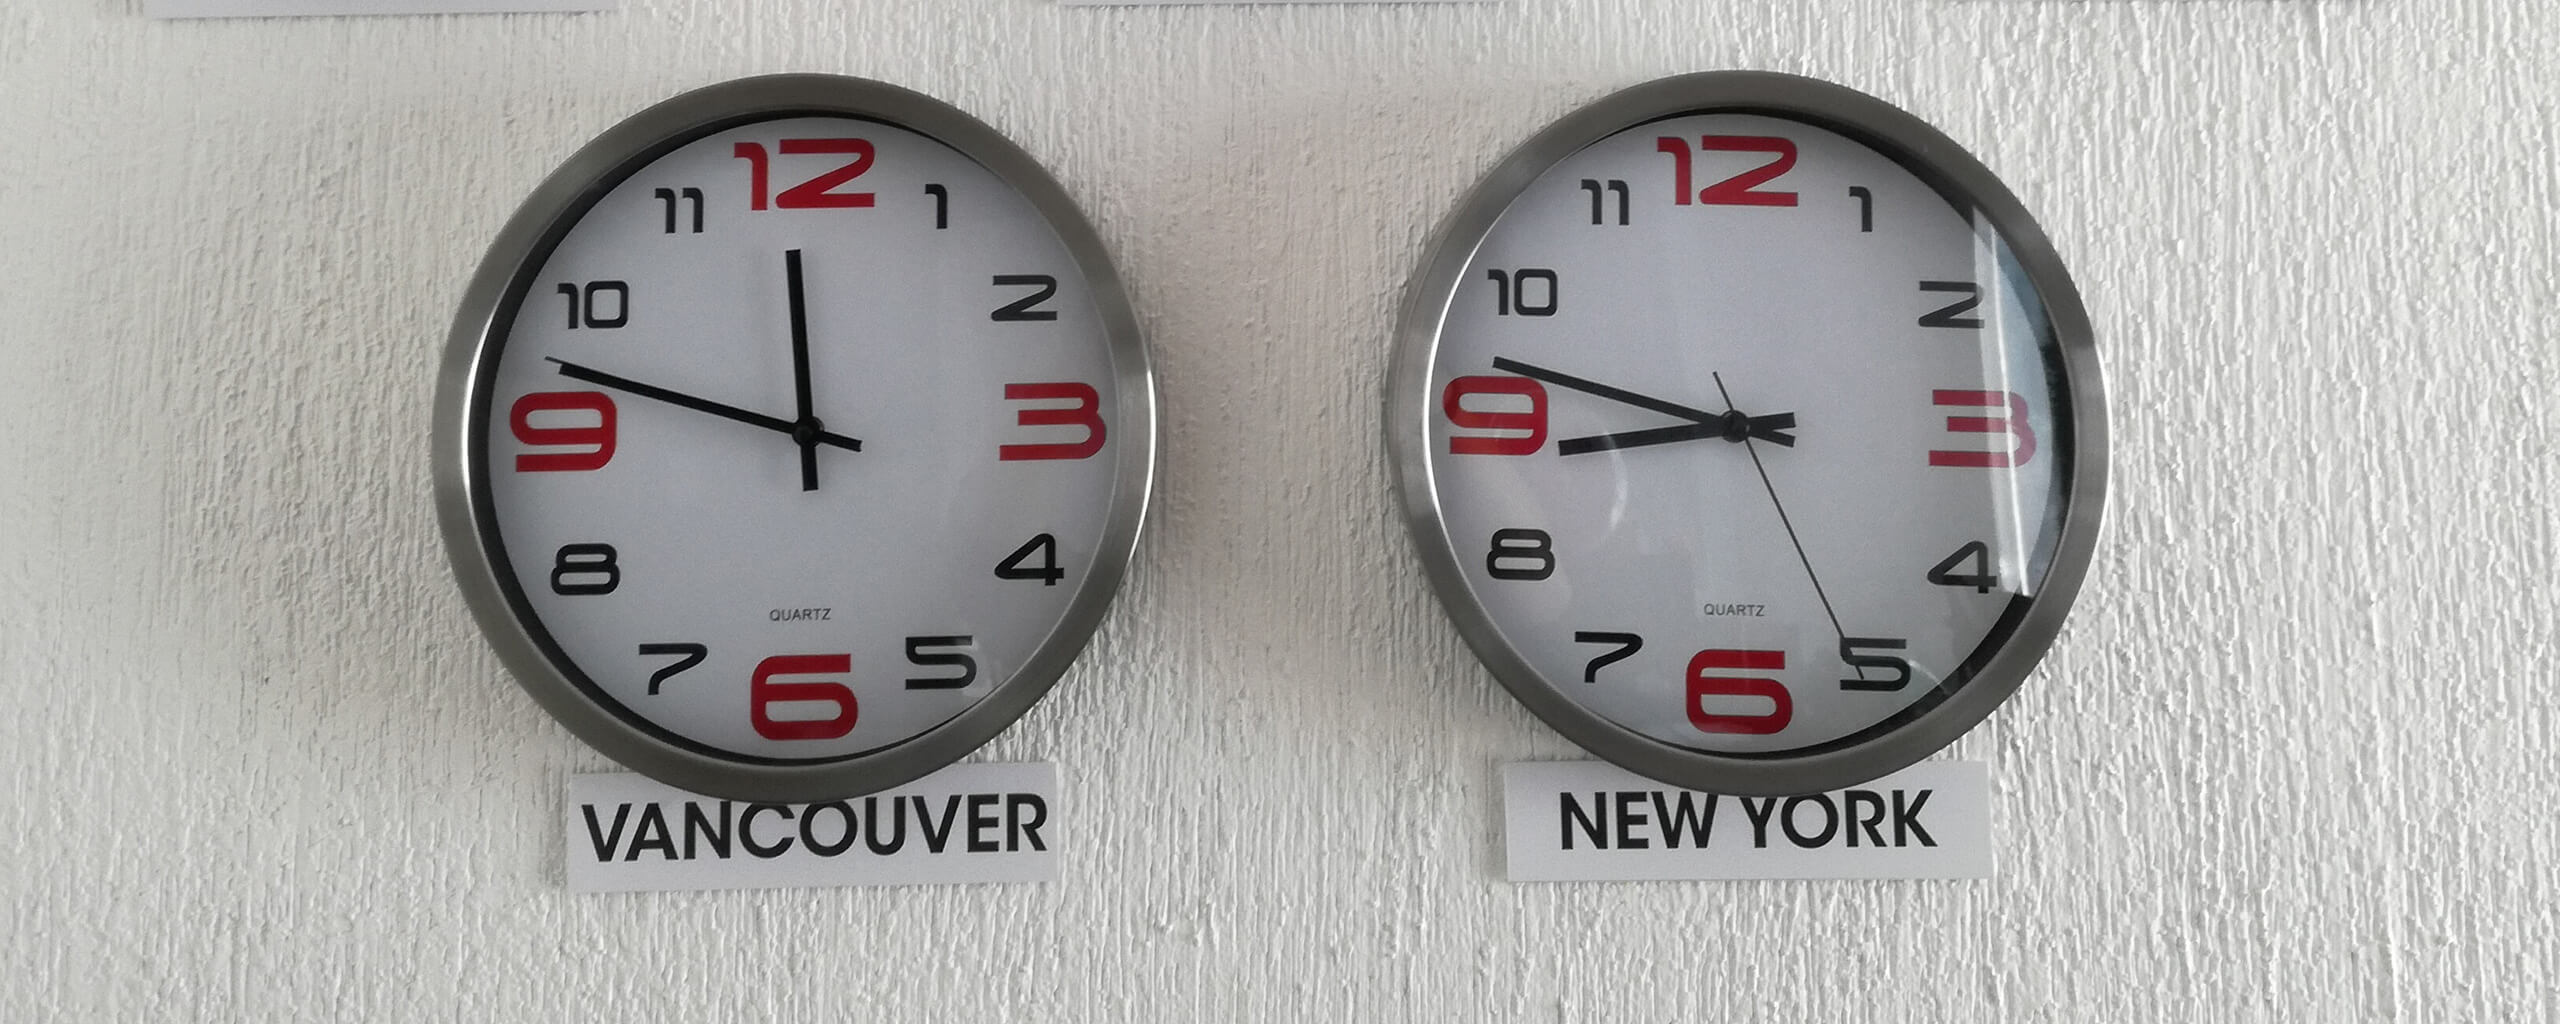 Clocks showing 2 different time zones